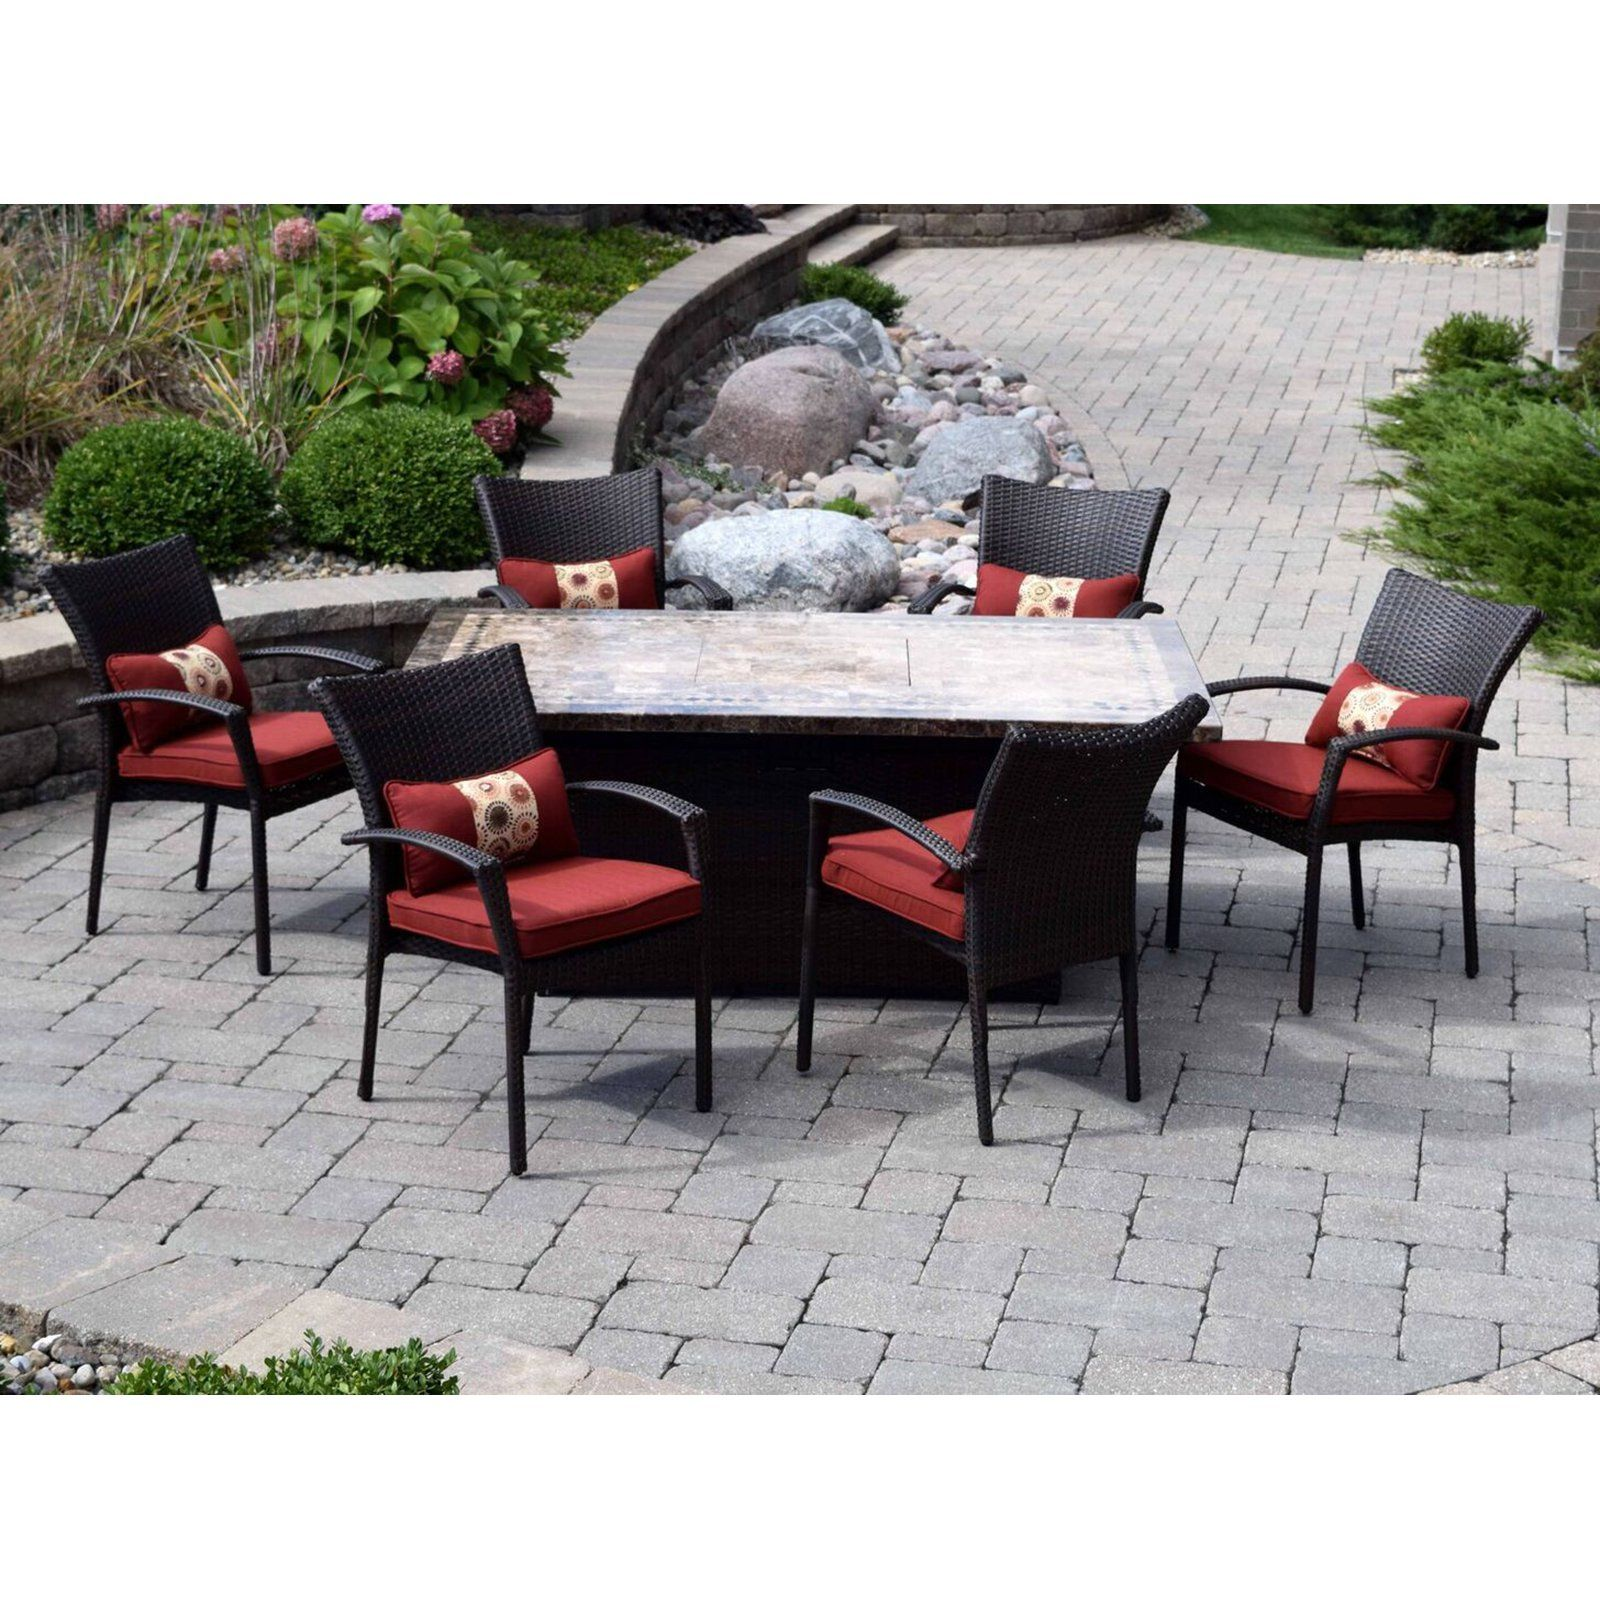 Outdoor Innovations South Beach Wicker Fire Pit Chat Set XAW